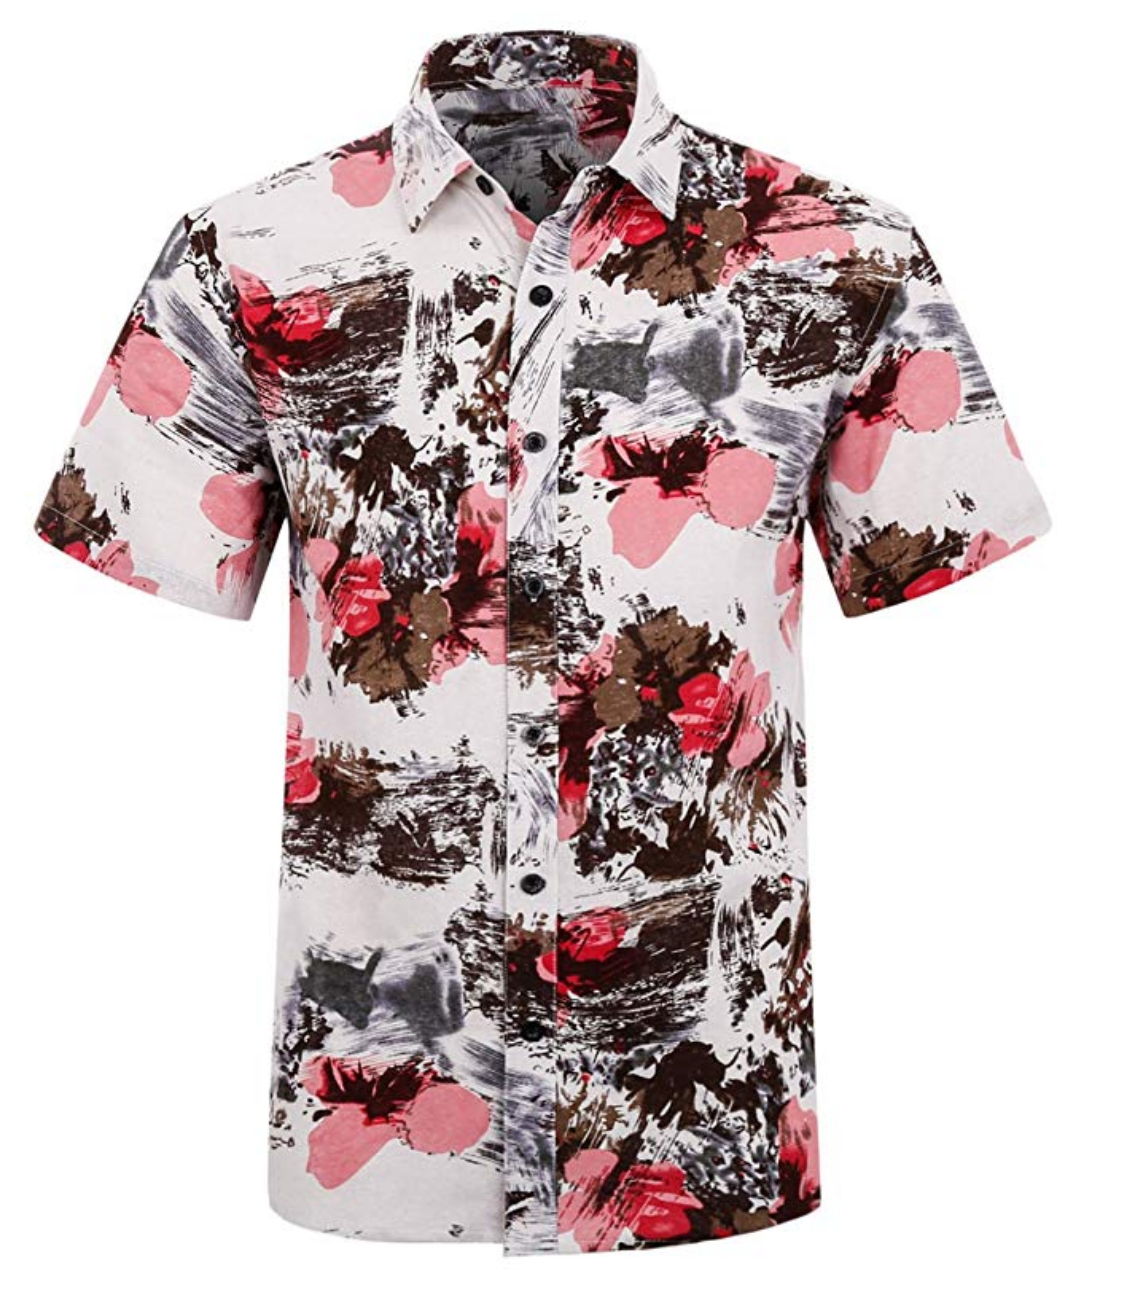 Hawaiian Shirt White, Brown and Watermelon Pink Flowers